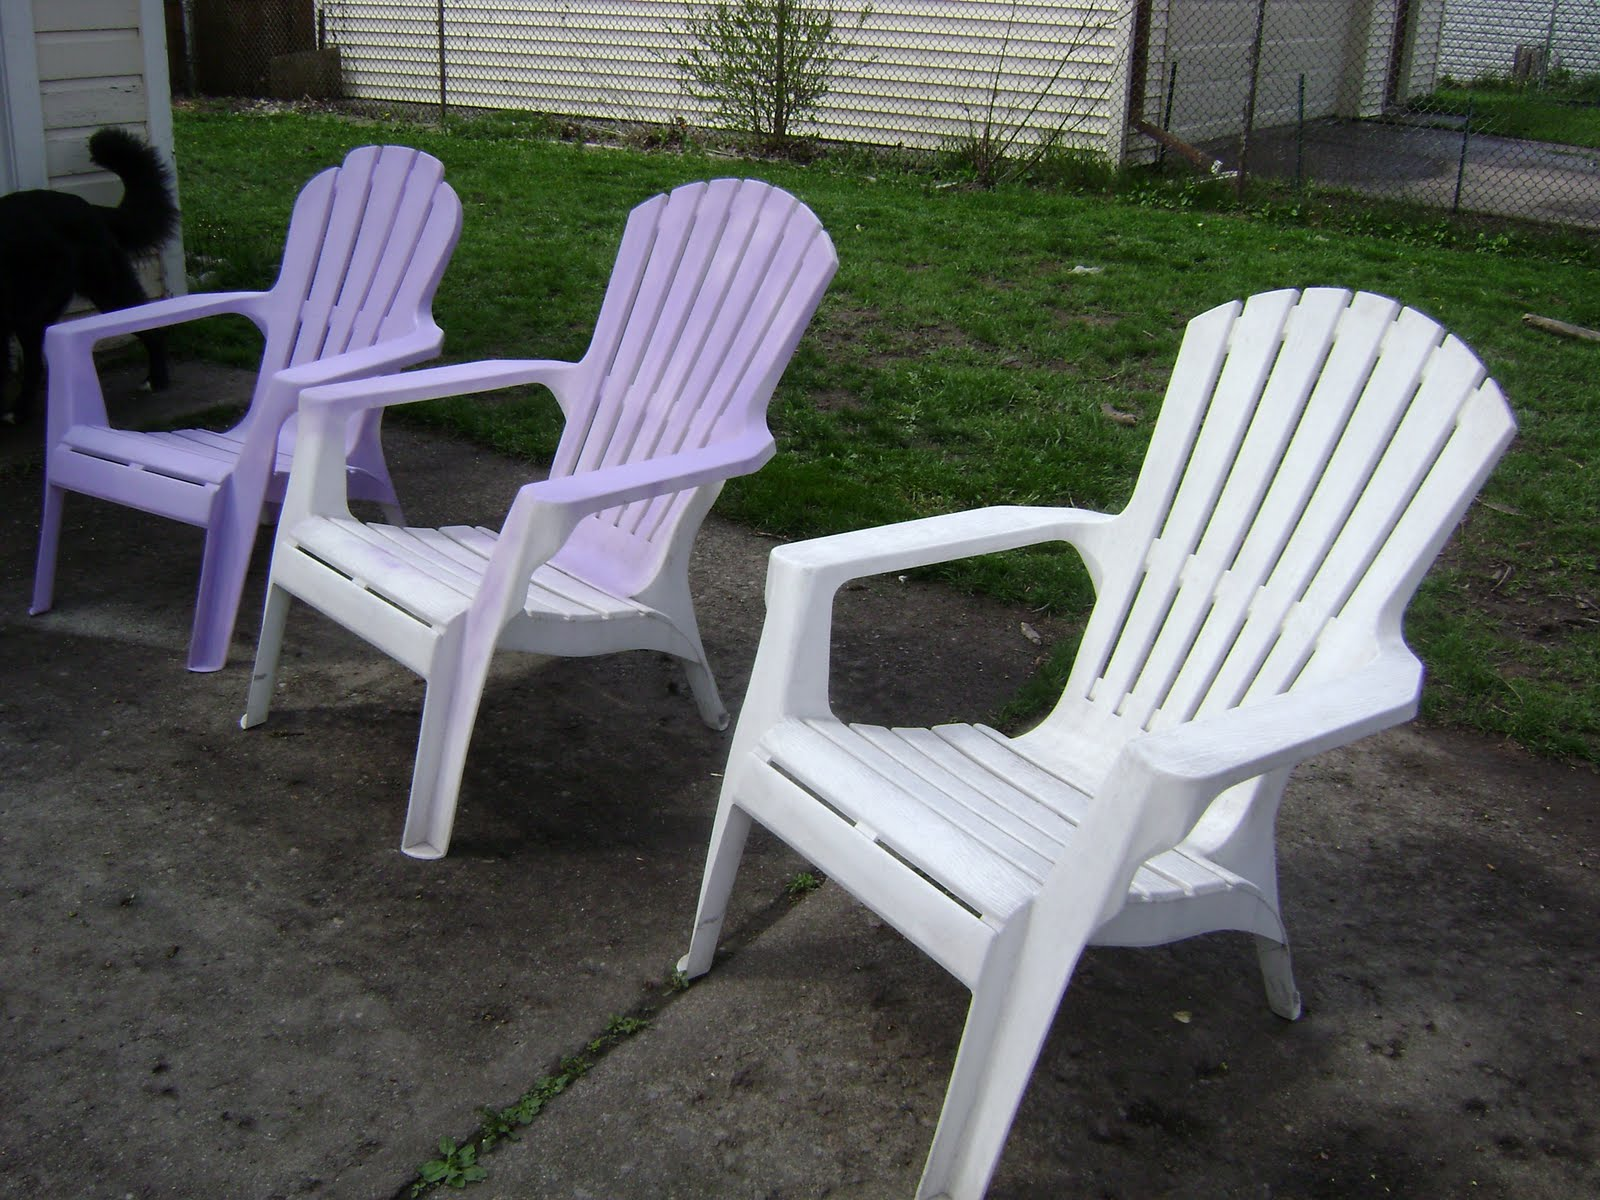 White Lawn Chairs Plastic Quality Chair Covers Milton Keynes Riparata Goody Gumdrop Impossible To Clean